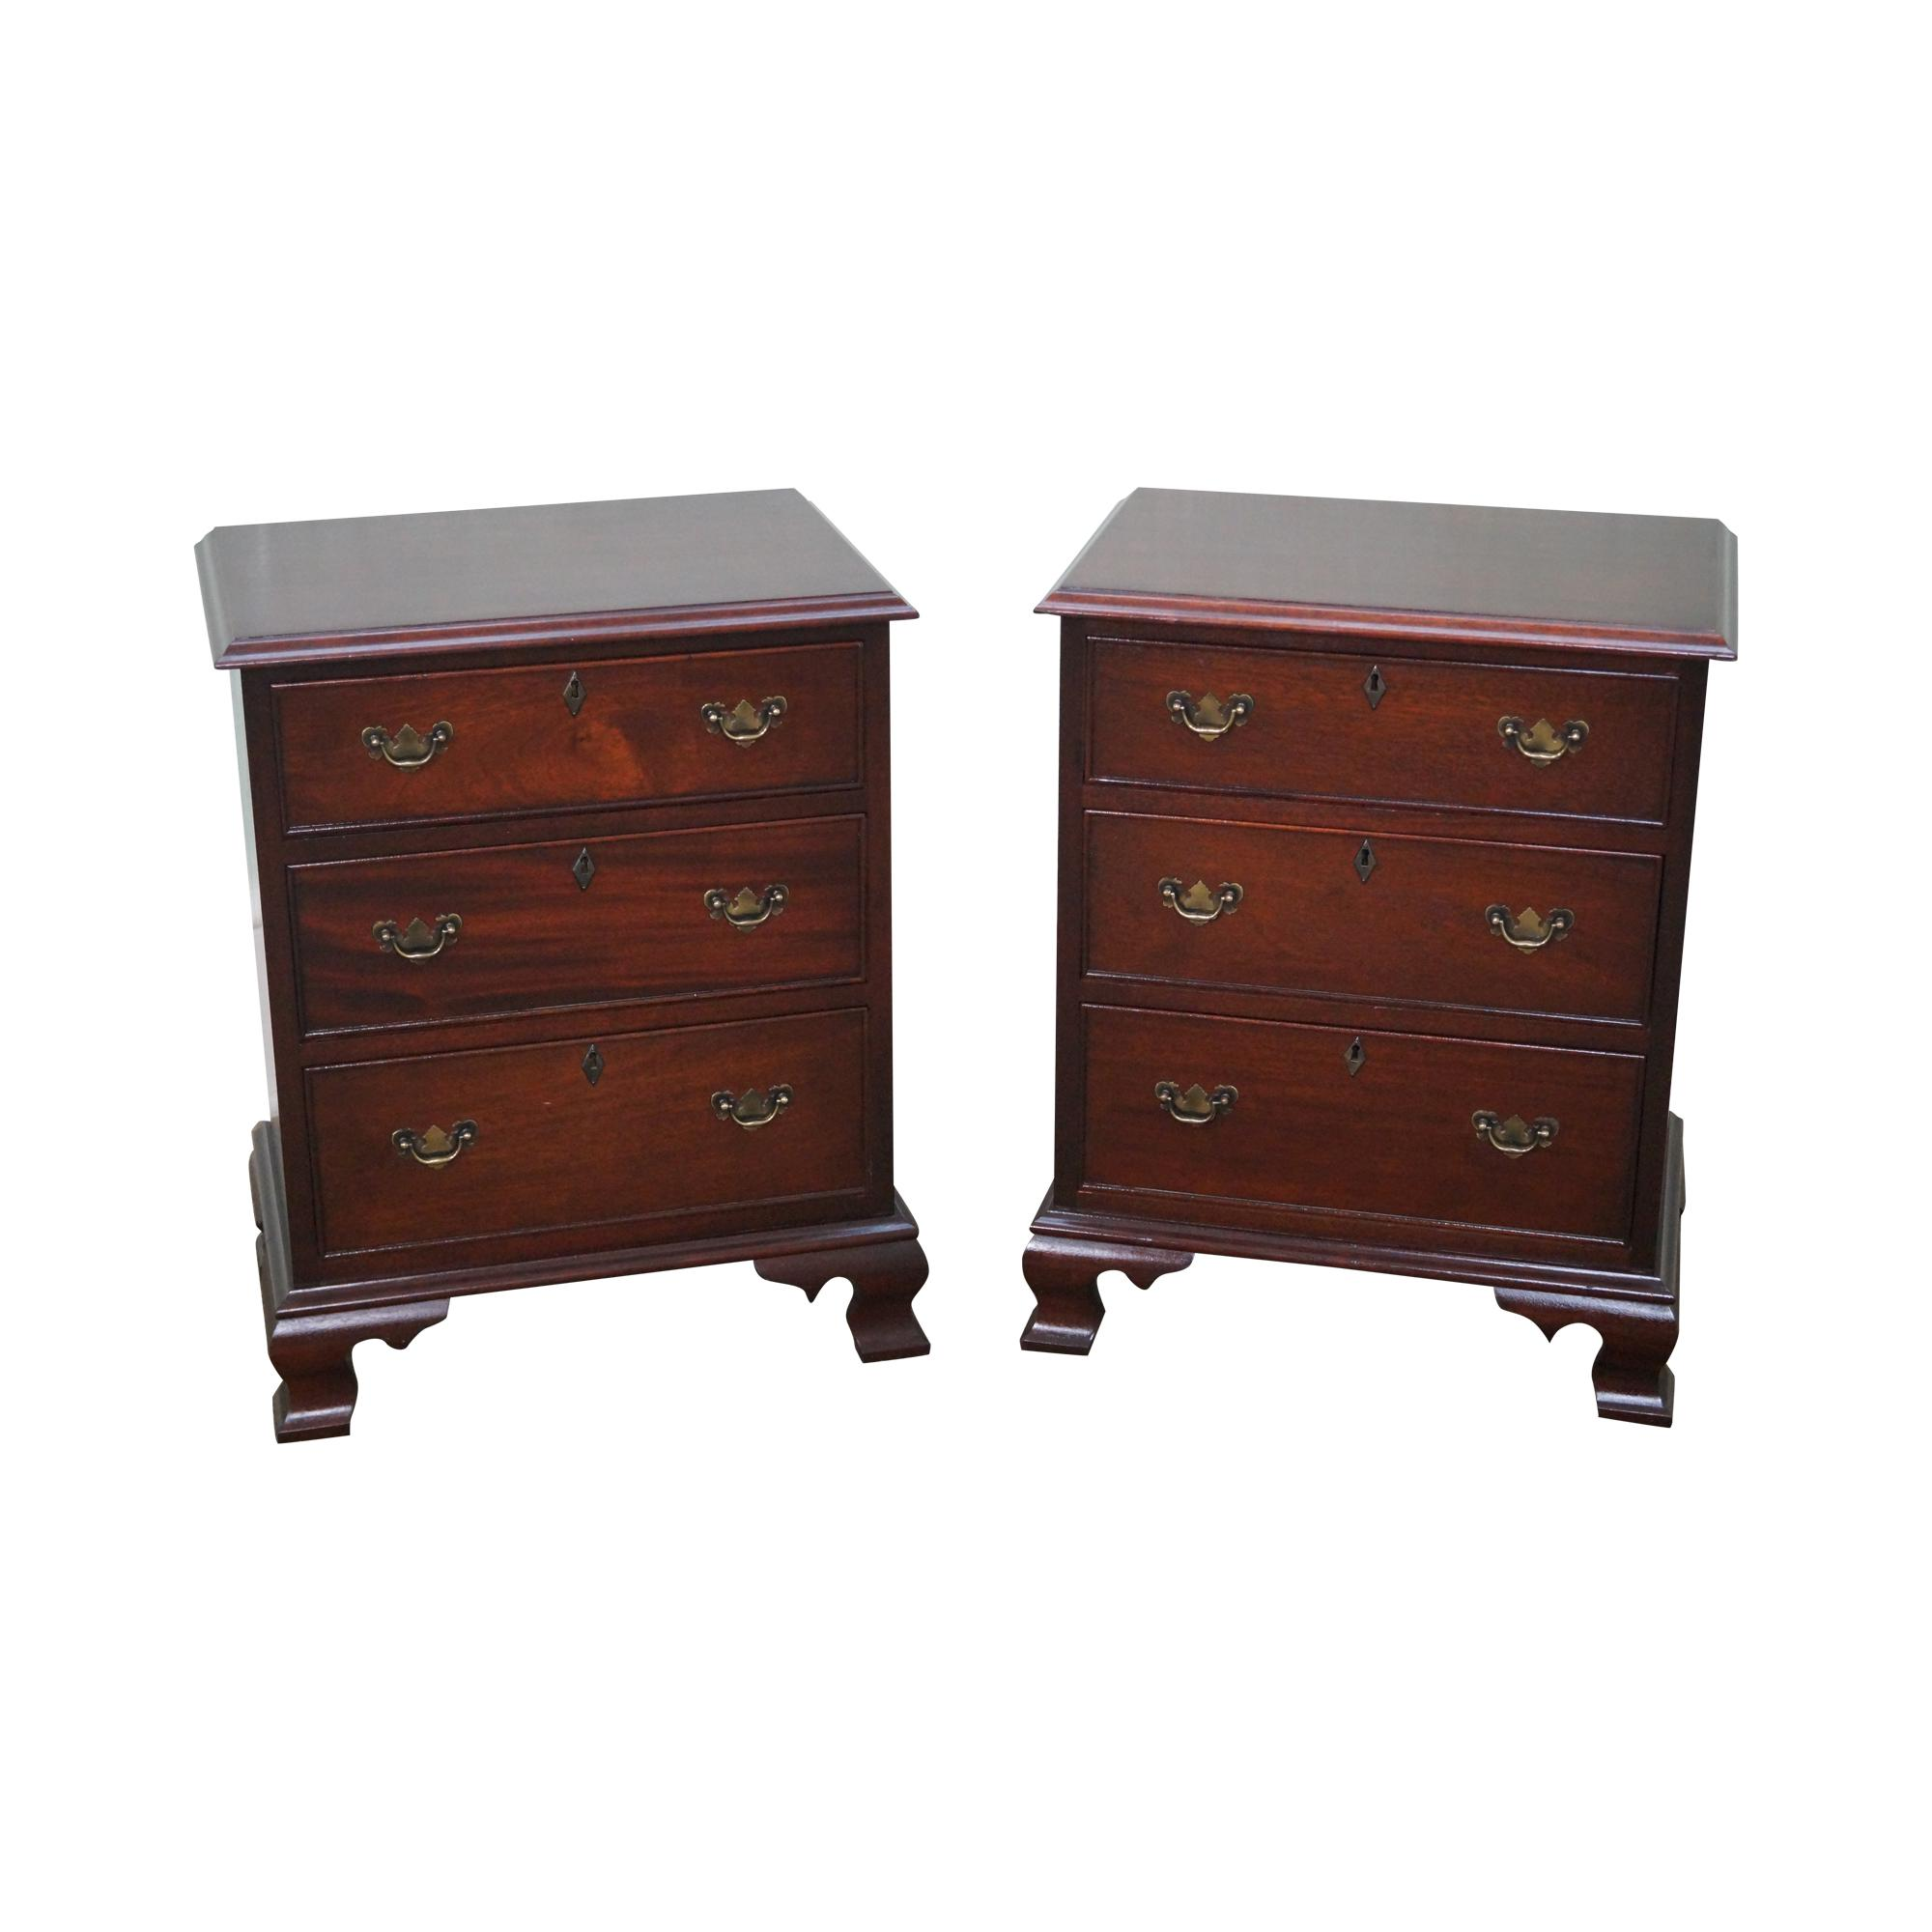 Craftique Solid Mahogany Chippendale Style Nightstands